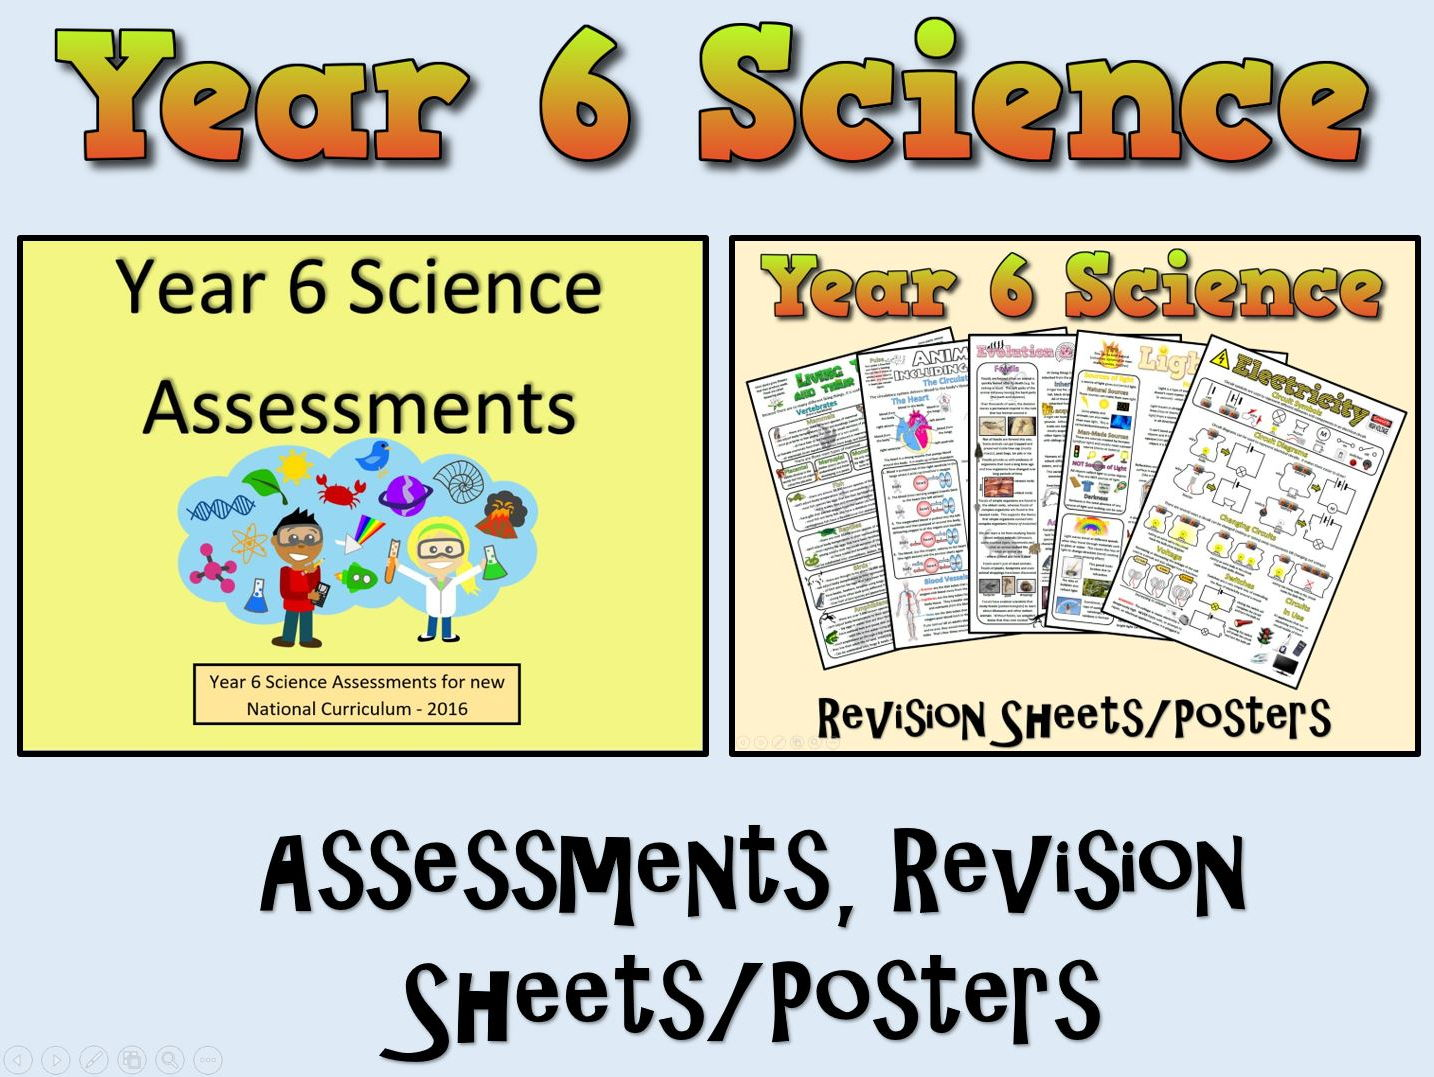 Year 6 Science Assessments + Posters/Revision Sheets